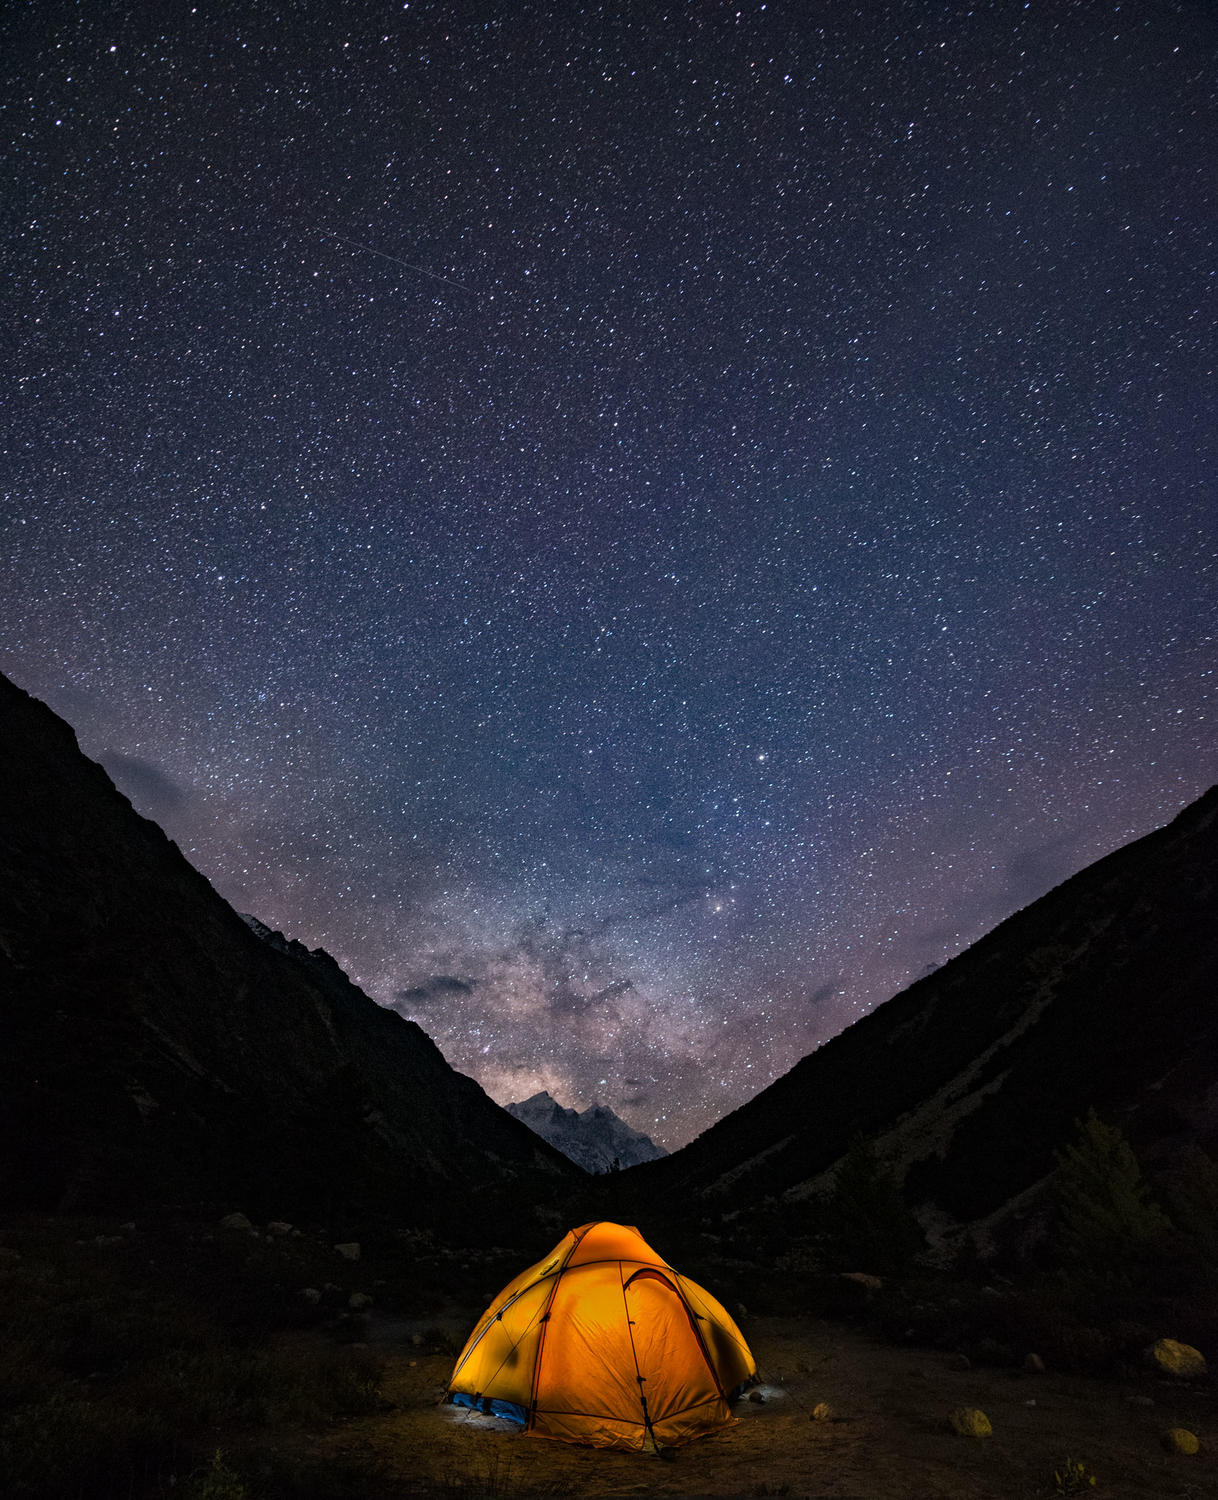 Milky Way rising from Chirbasa camp site